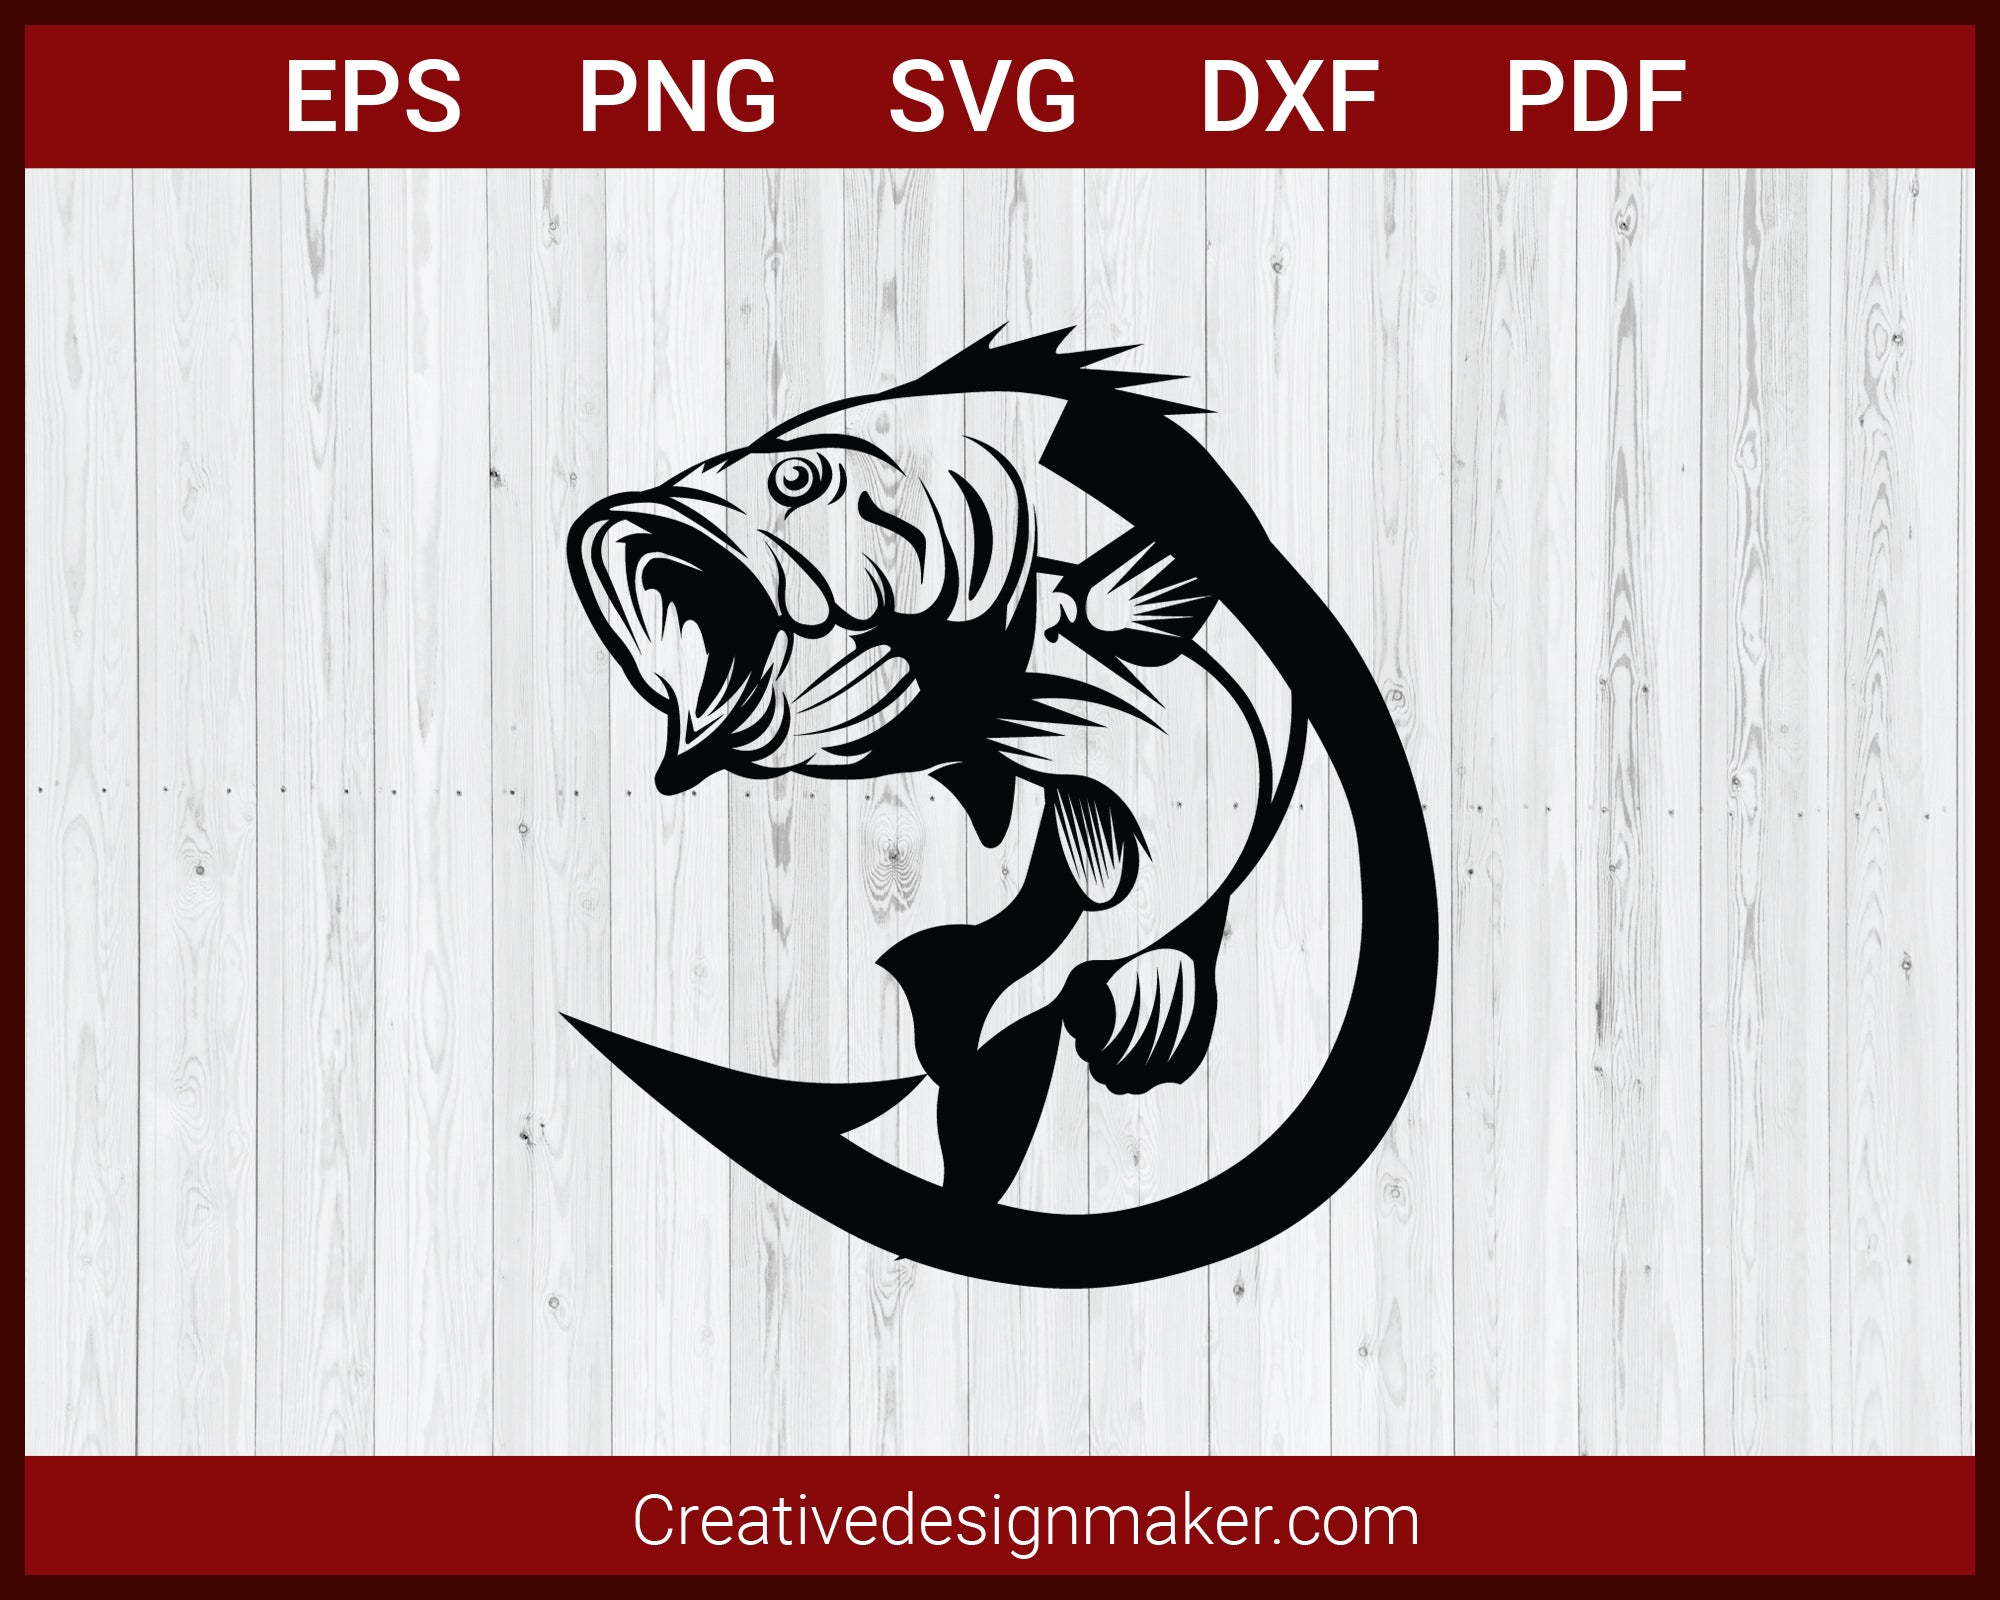 Download Fishing Hook Fish Svg Cut File For Cricut Silhouette Eps Png Creativedesignmaker